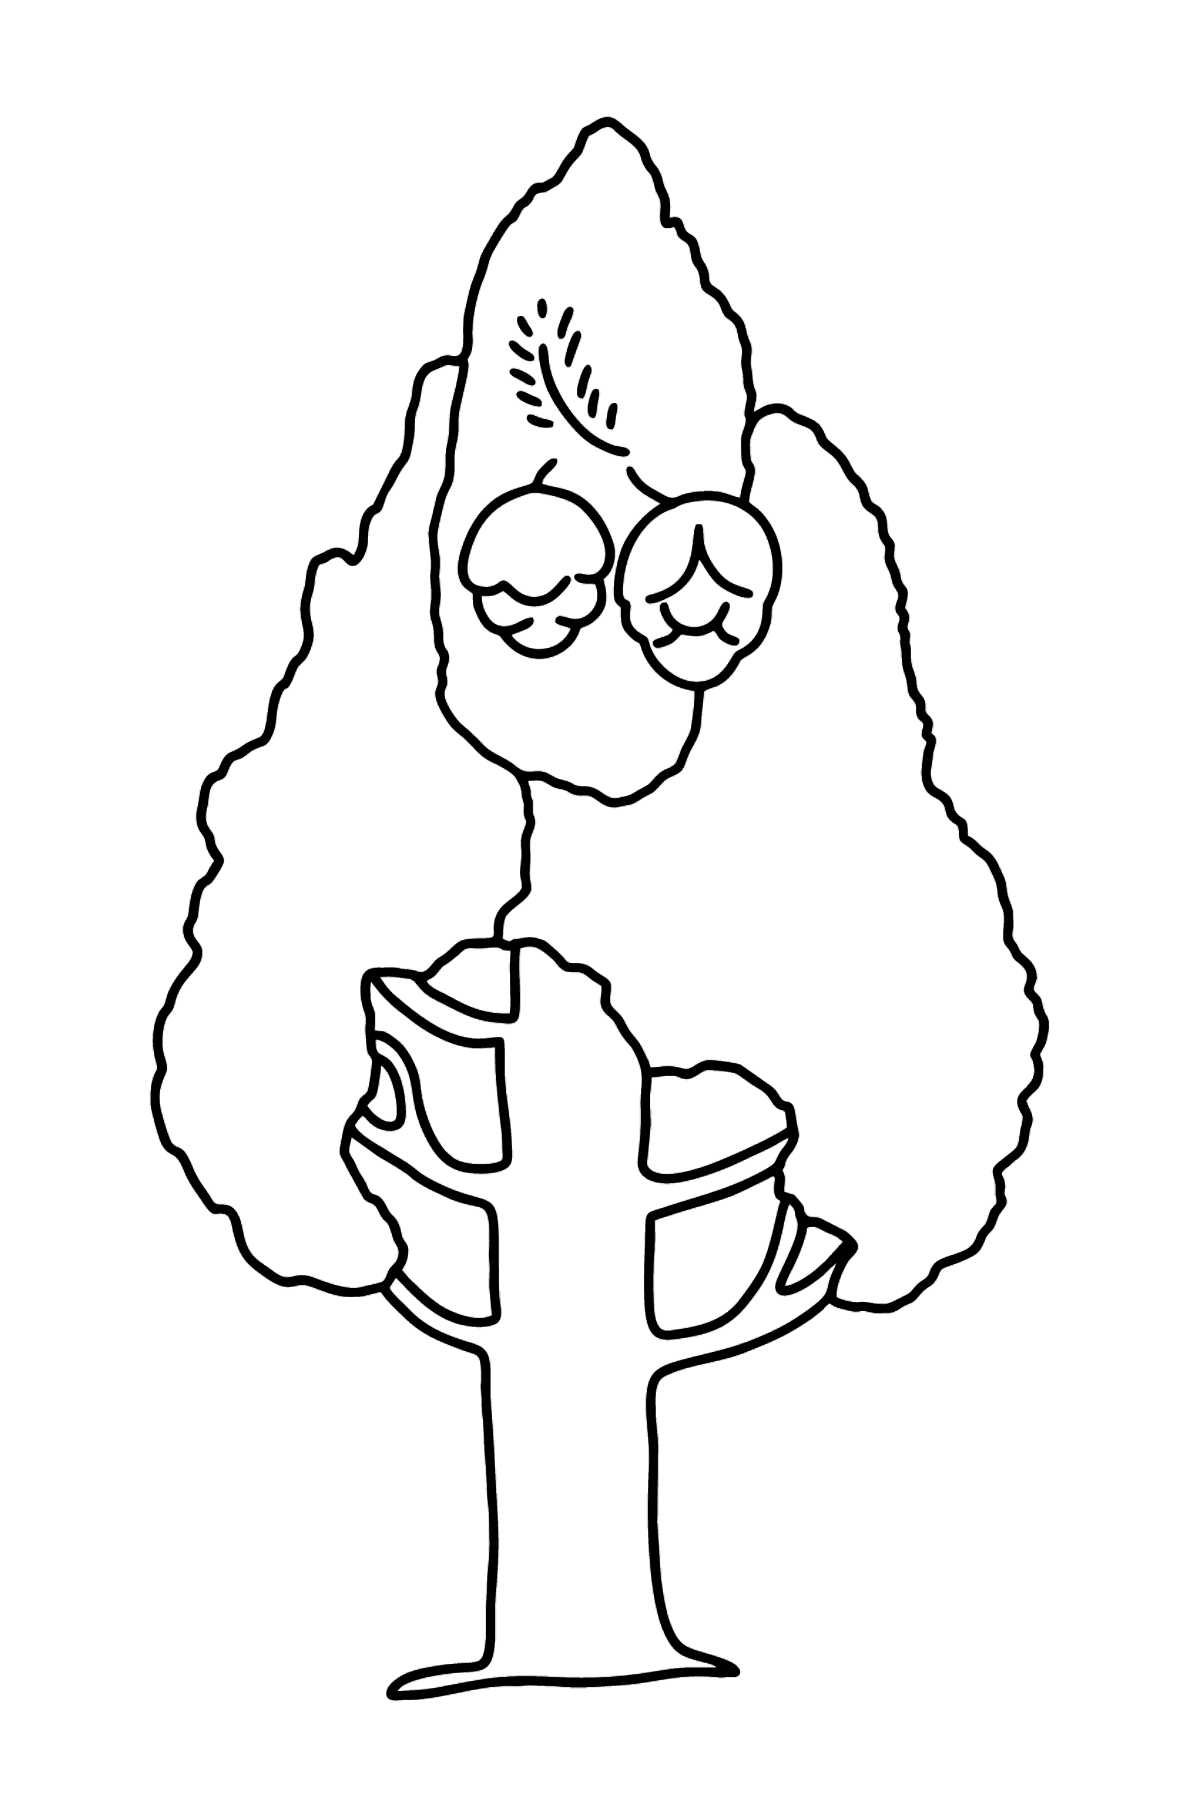 Larch coloring page - Coloring Pages for Kids